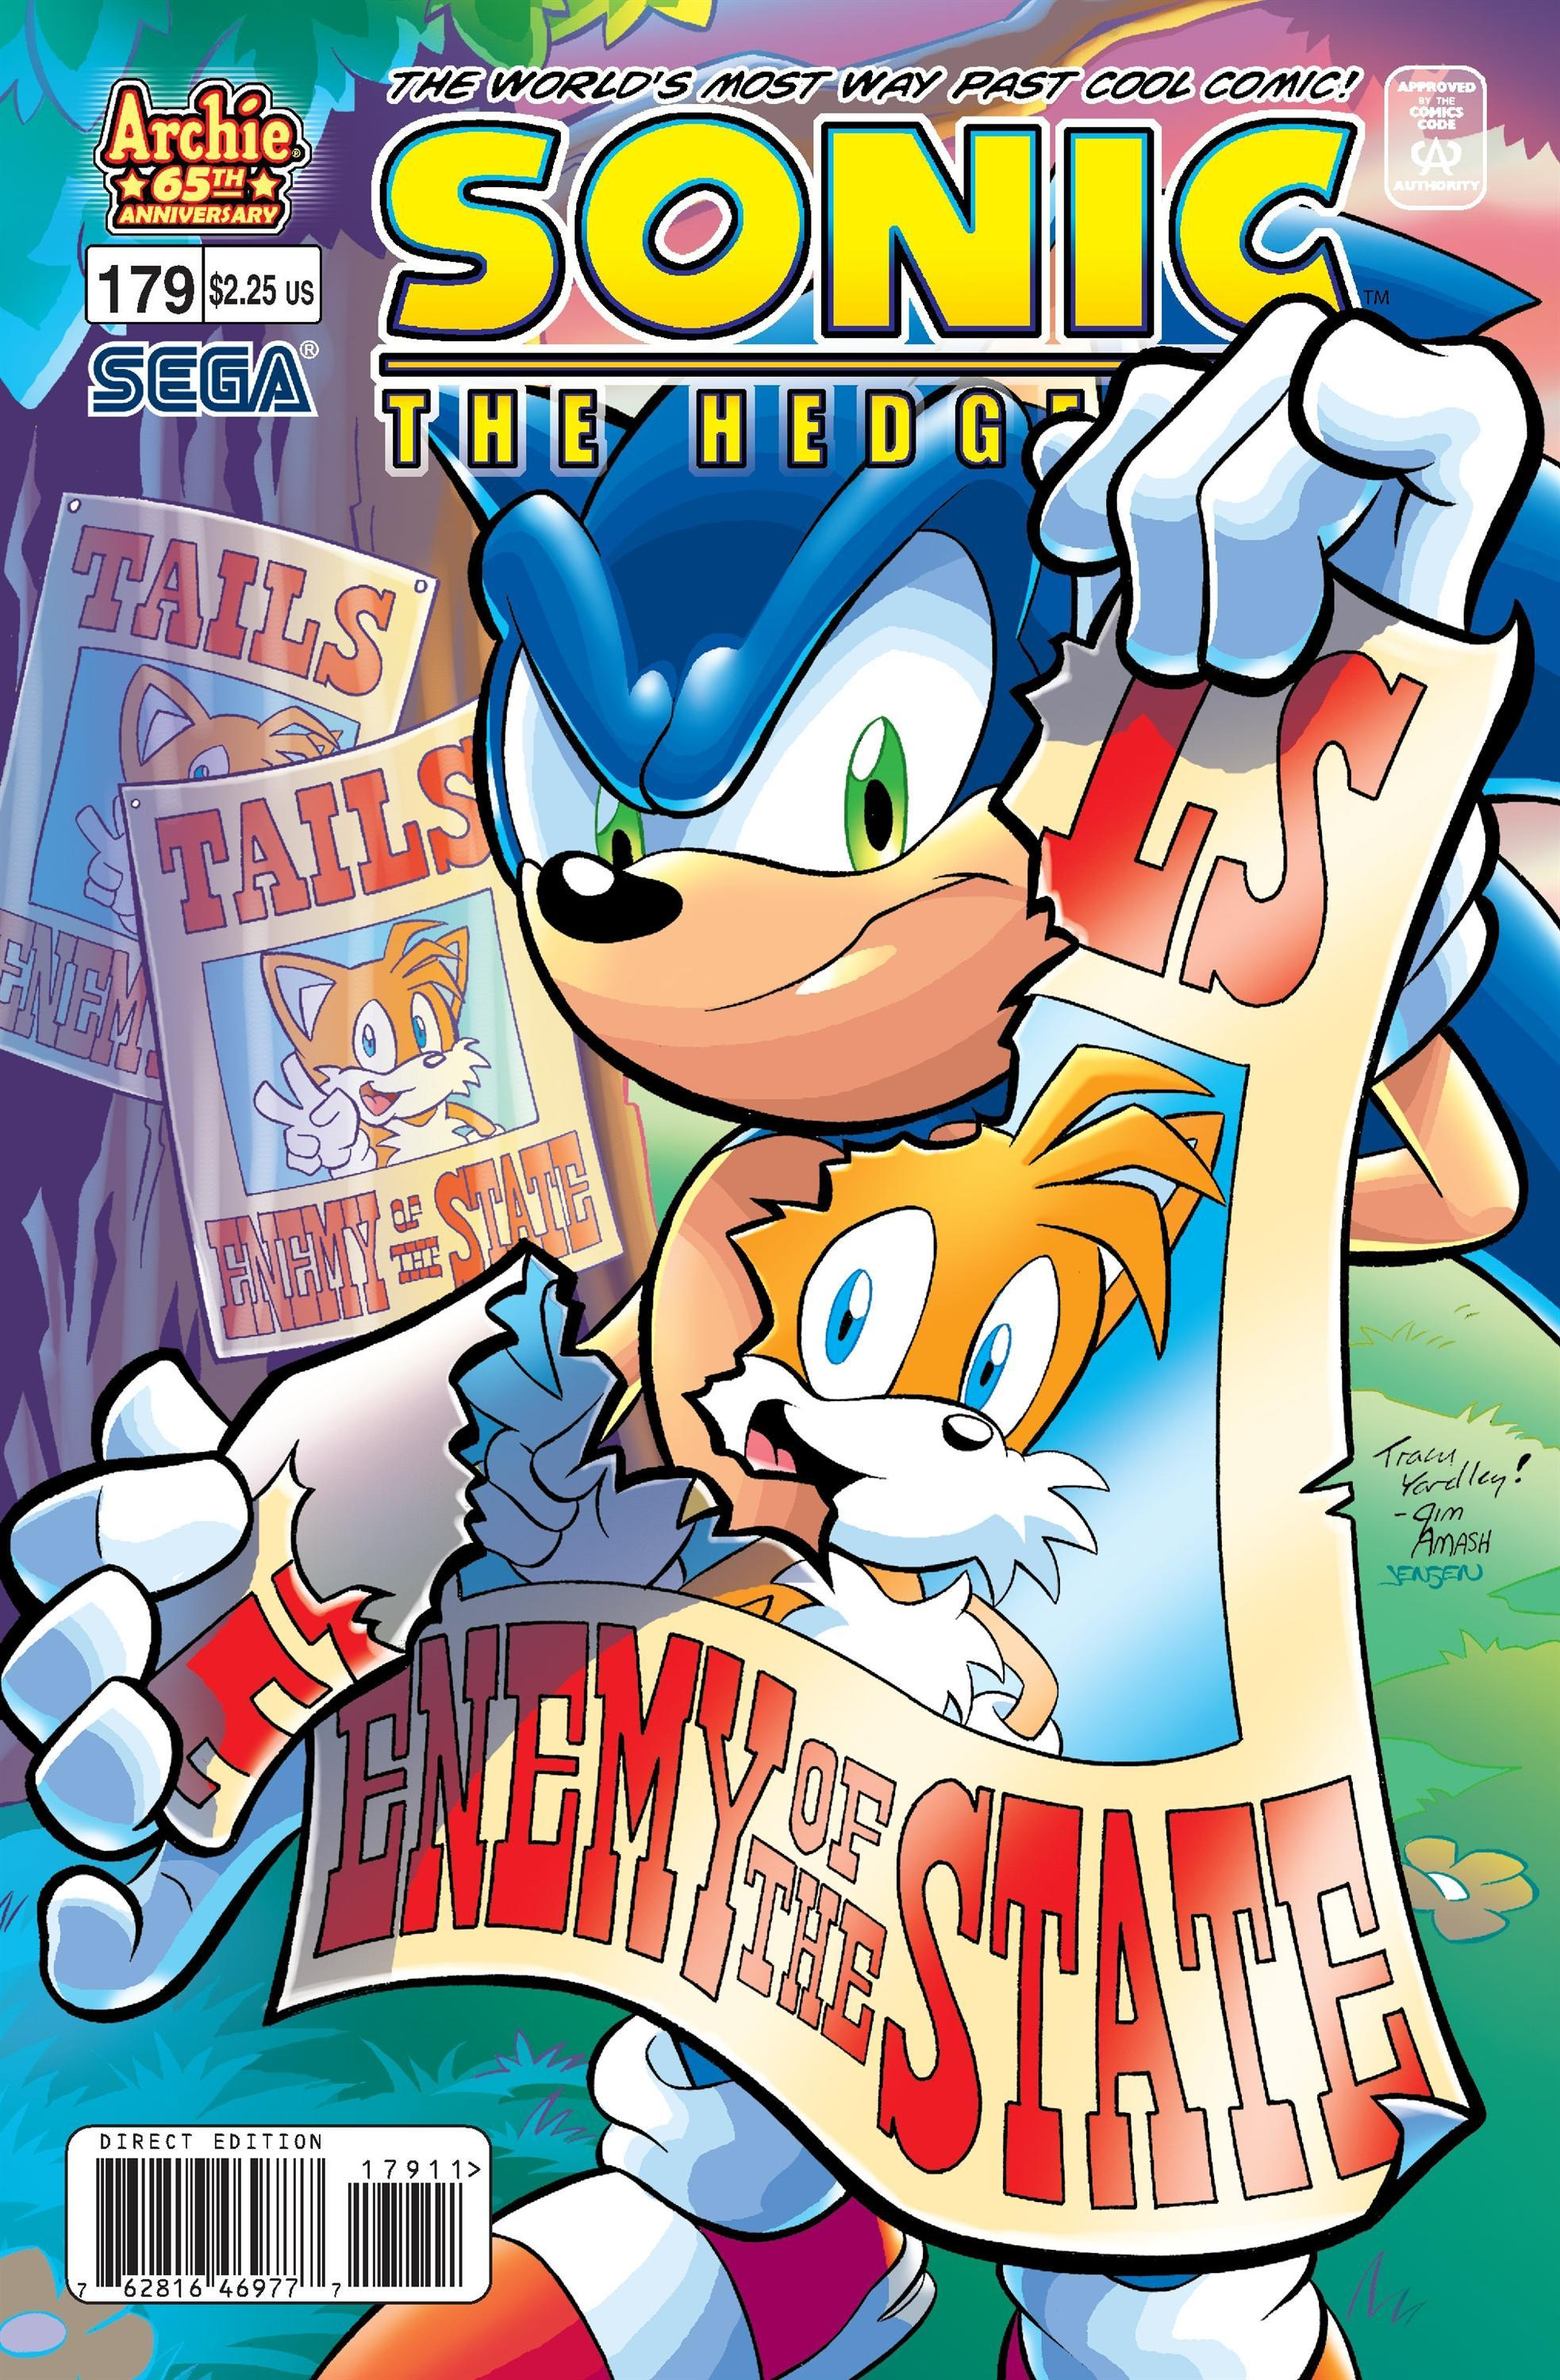 archie sonic the hedgehog issue 179 sonic news network fandom